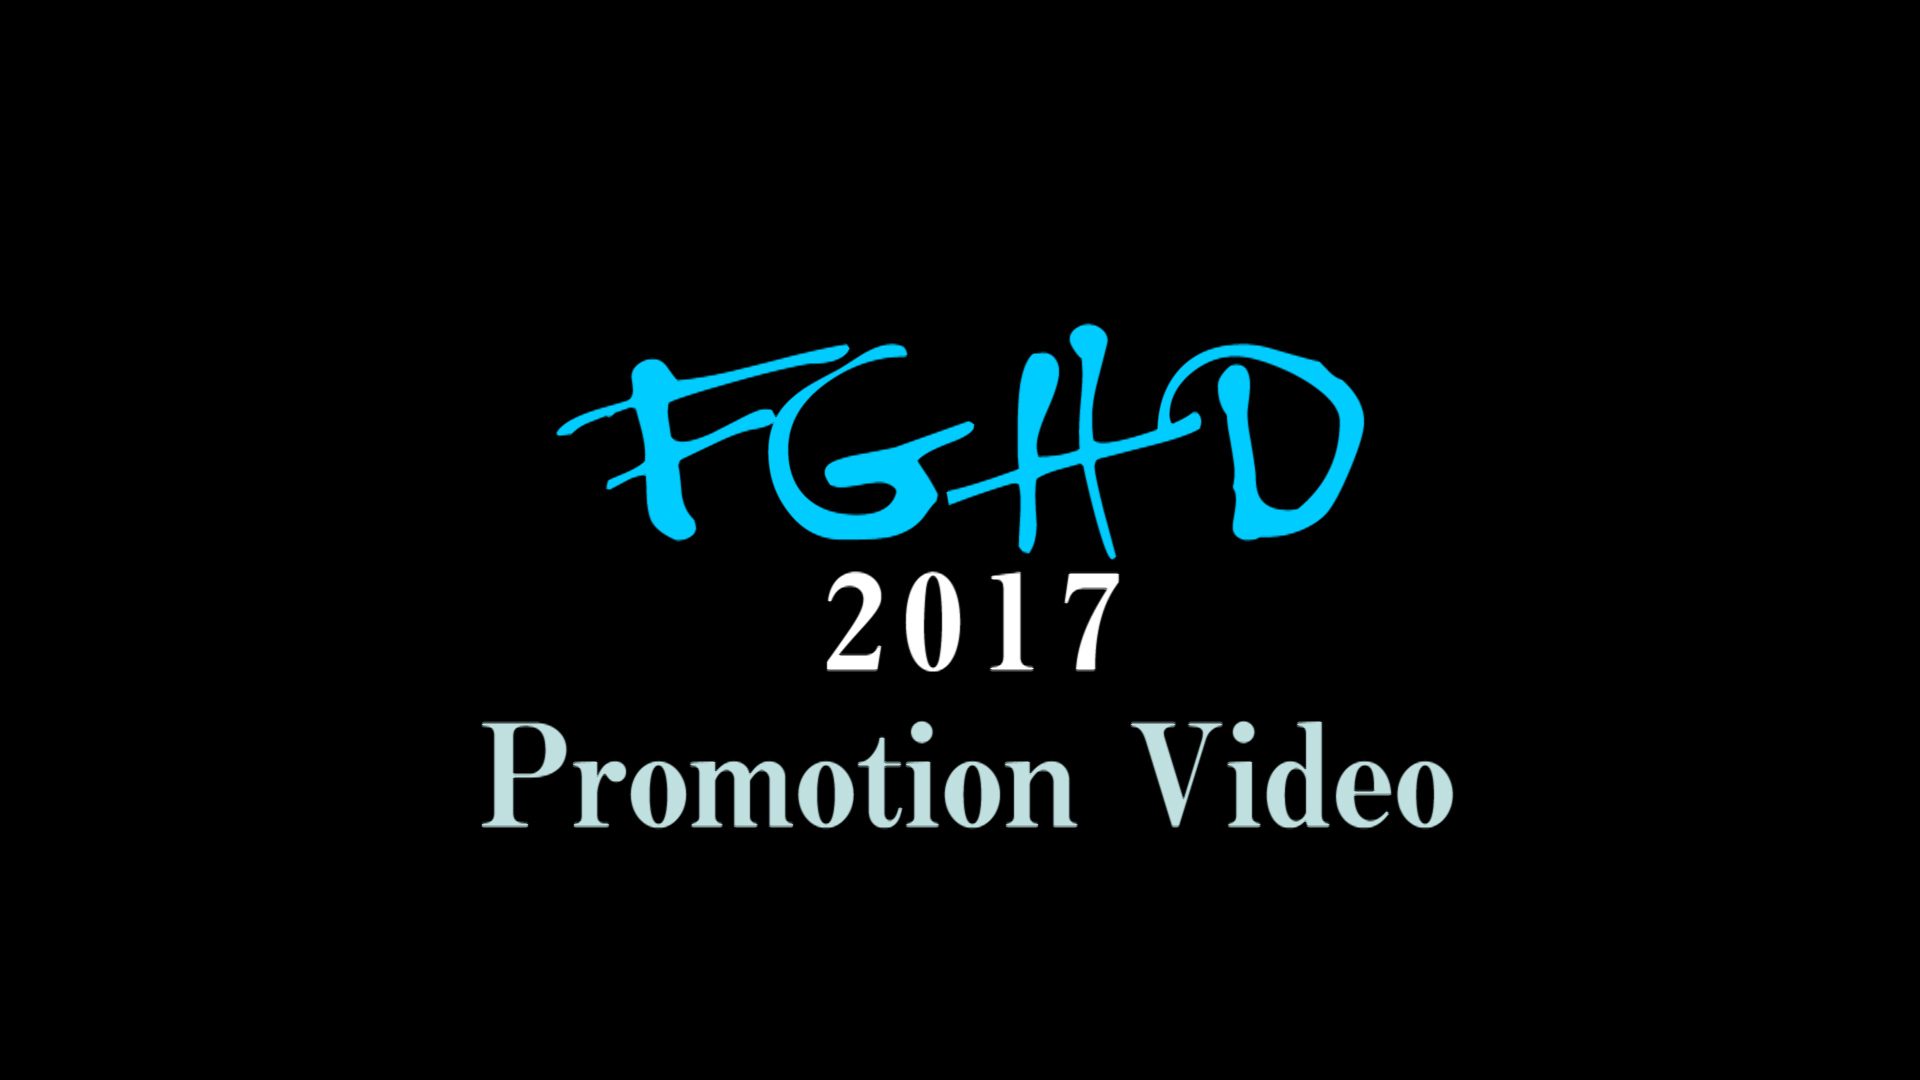 FGHD PromotionVideo 2017